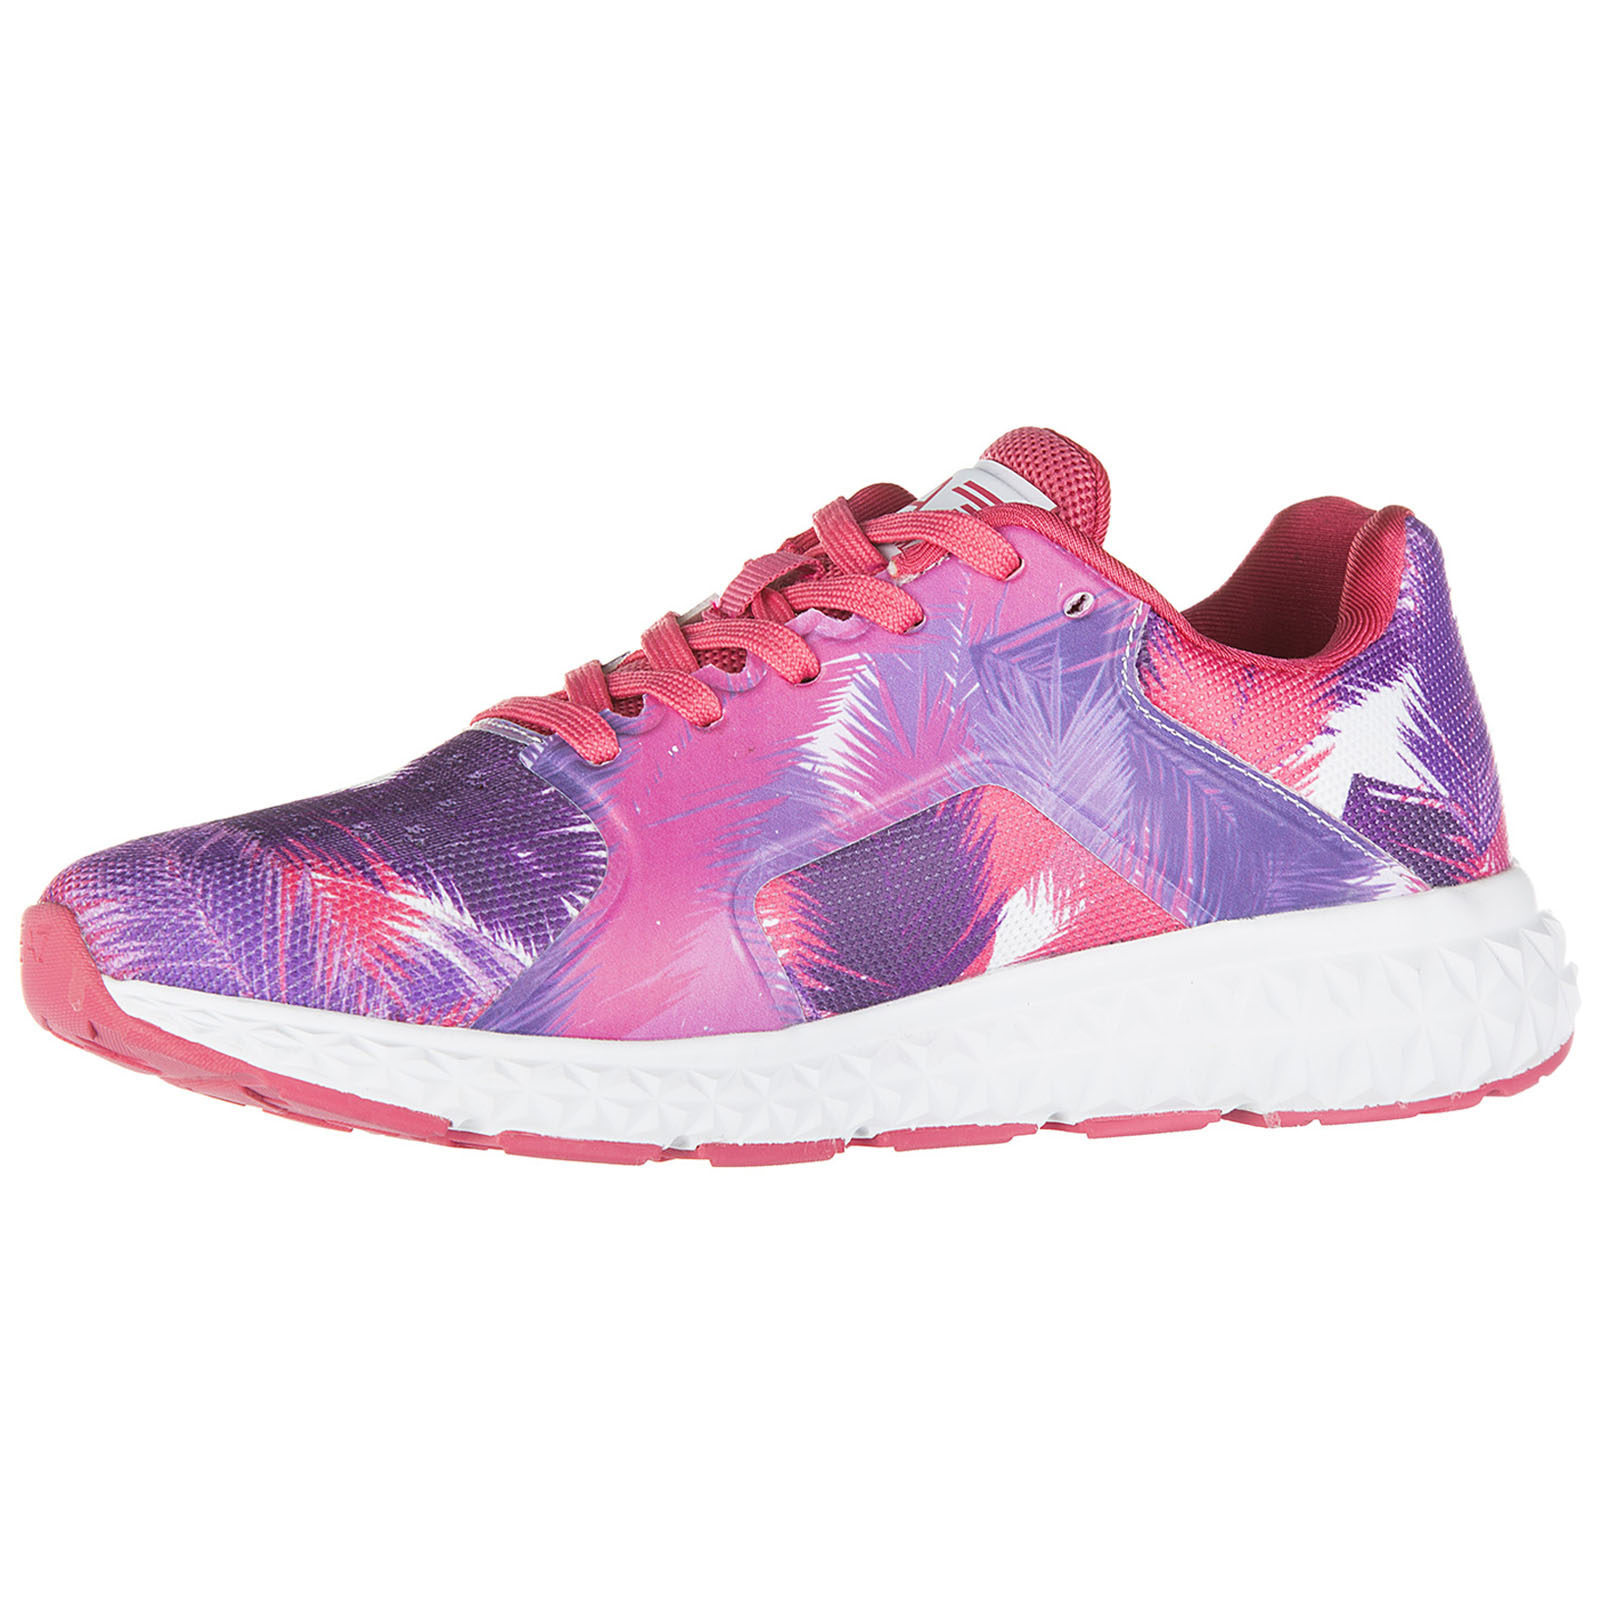 Chaussures baskets sneakers femme  light spirit graphic